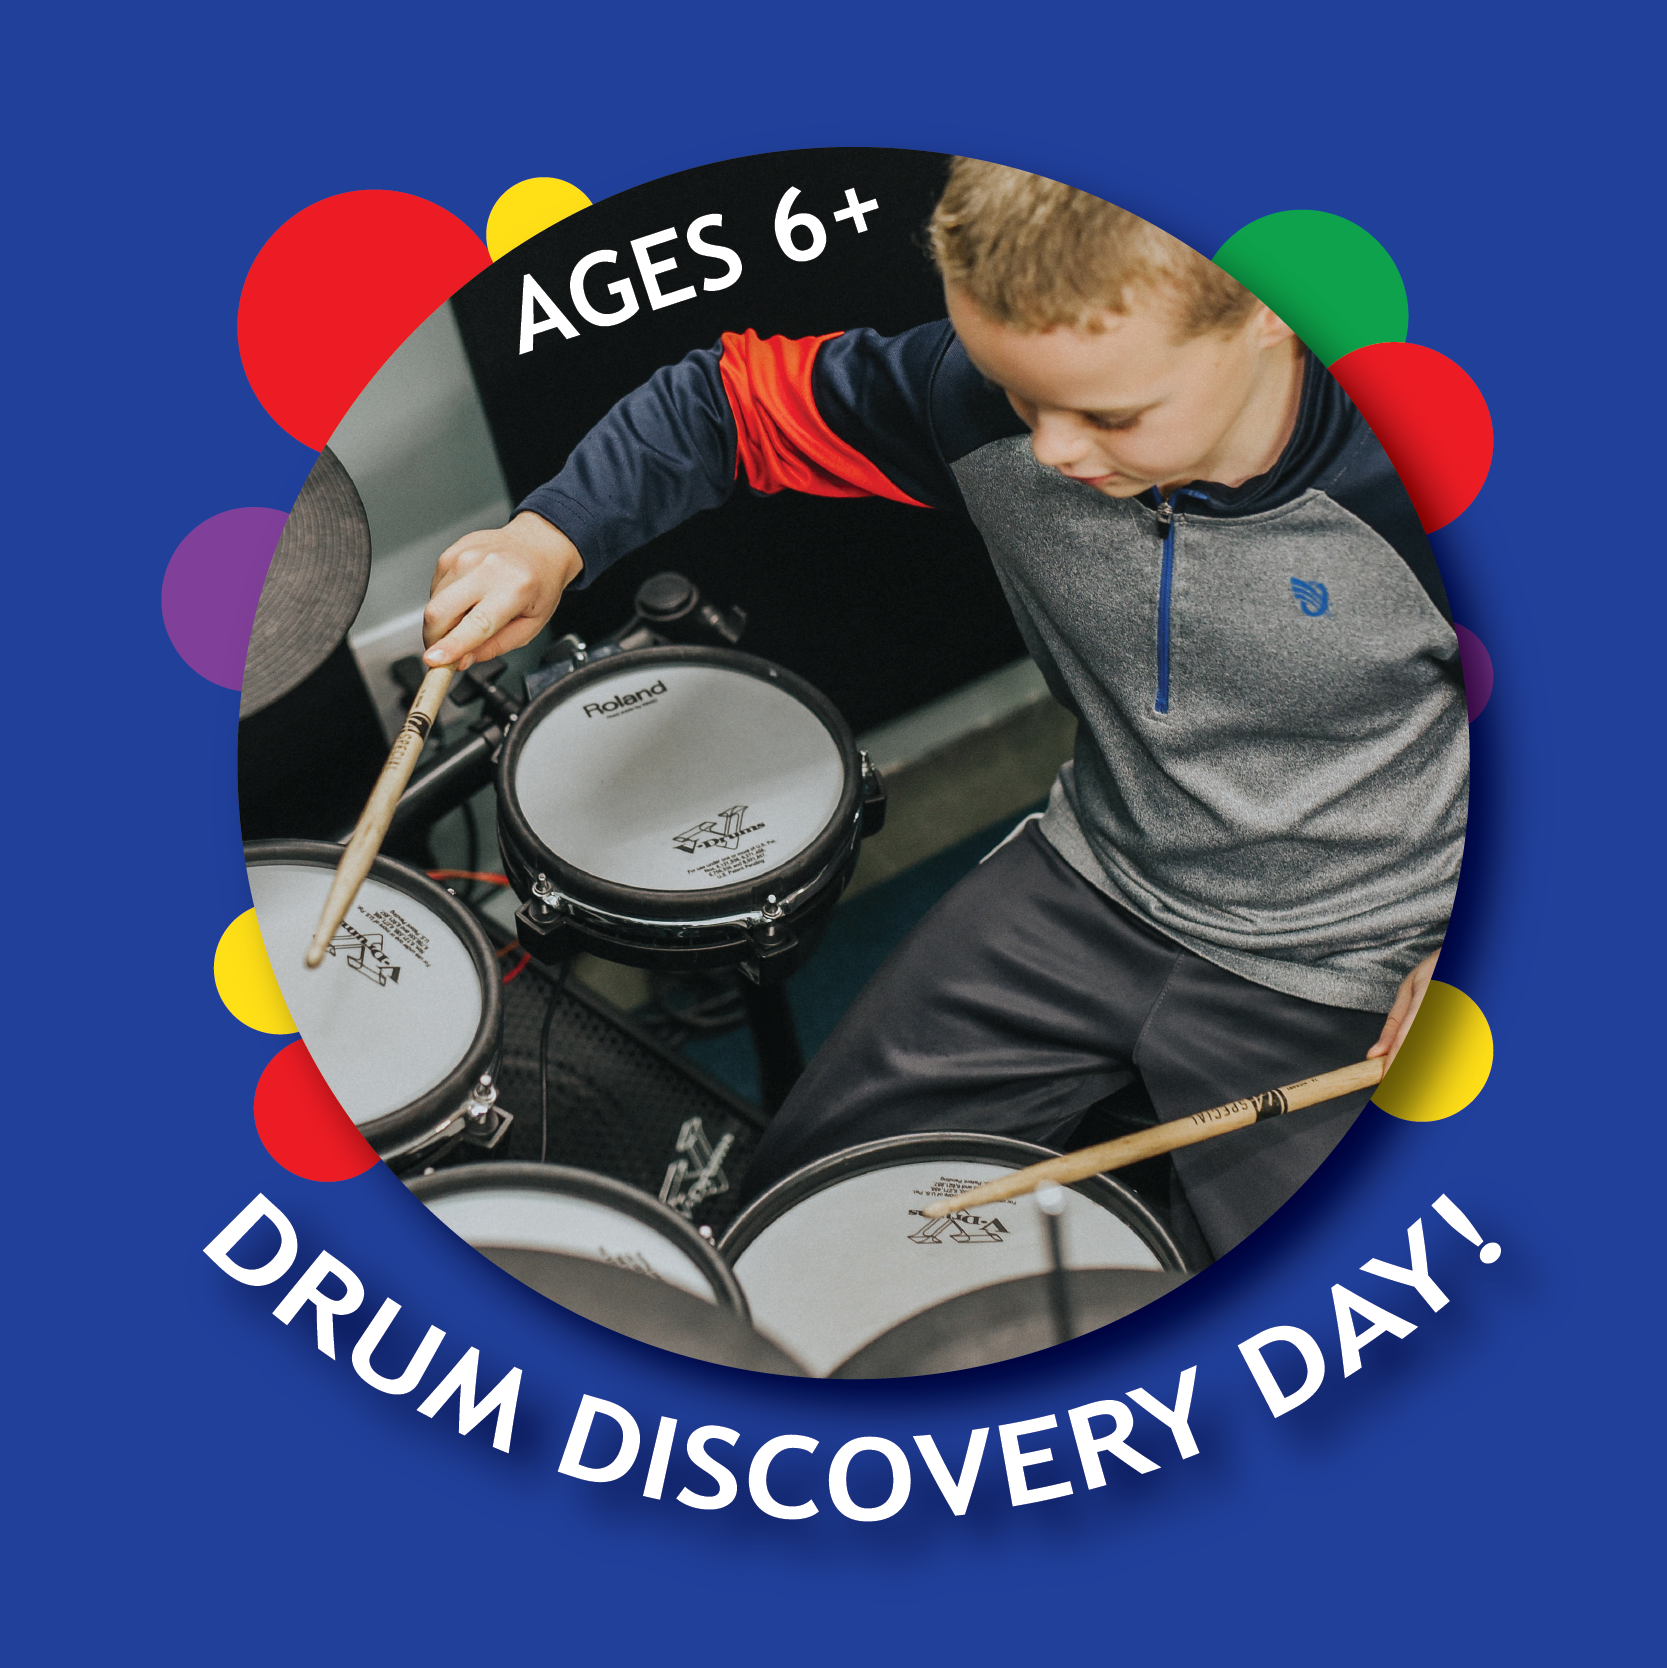 Drum Discover Day is a great way to see if drum lessons are for you or your child! All are welcome!